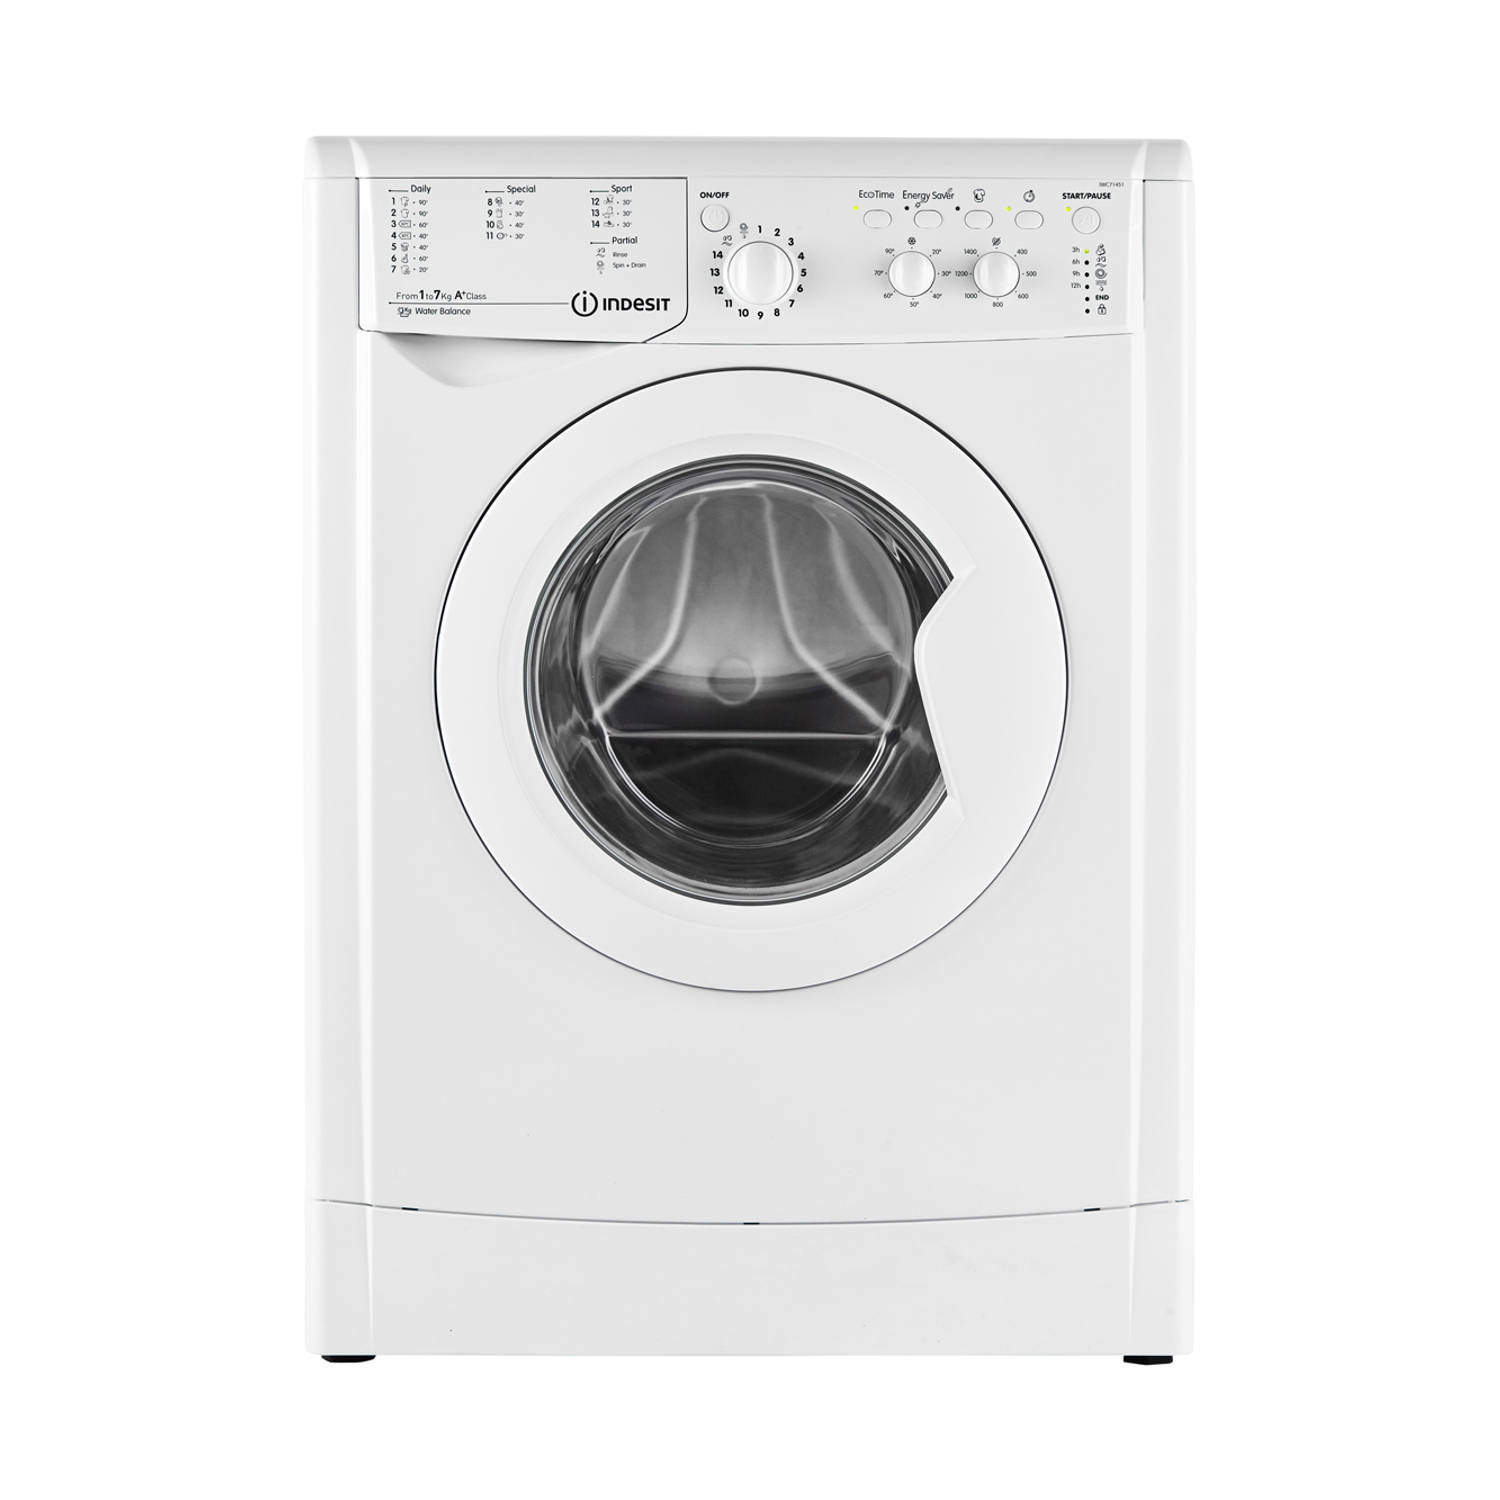 Indesit IWC 71451 ECO(EU) wasmachines - Wit